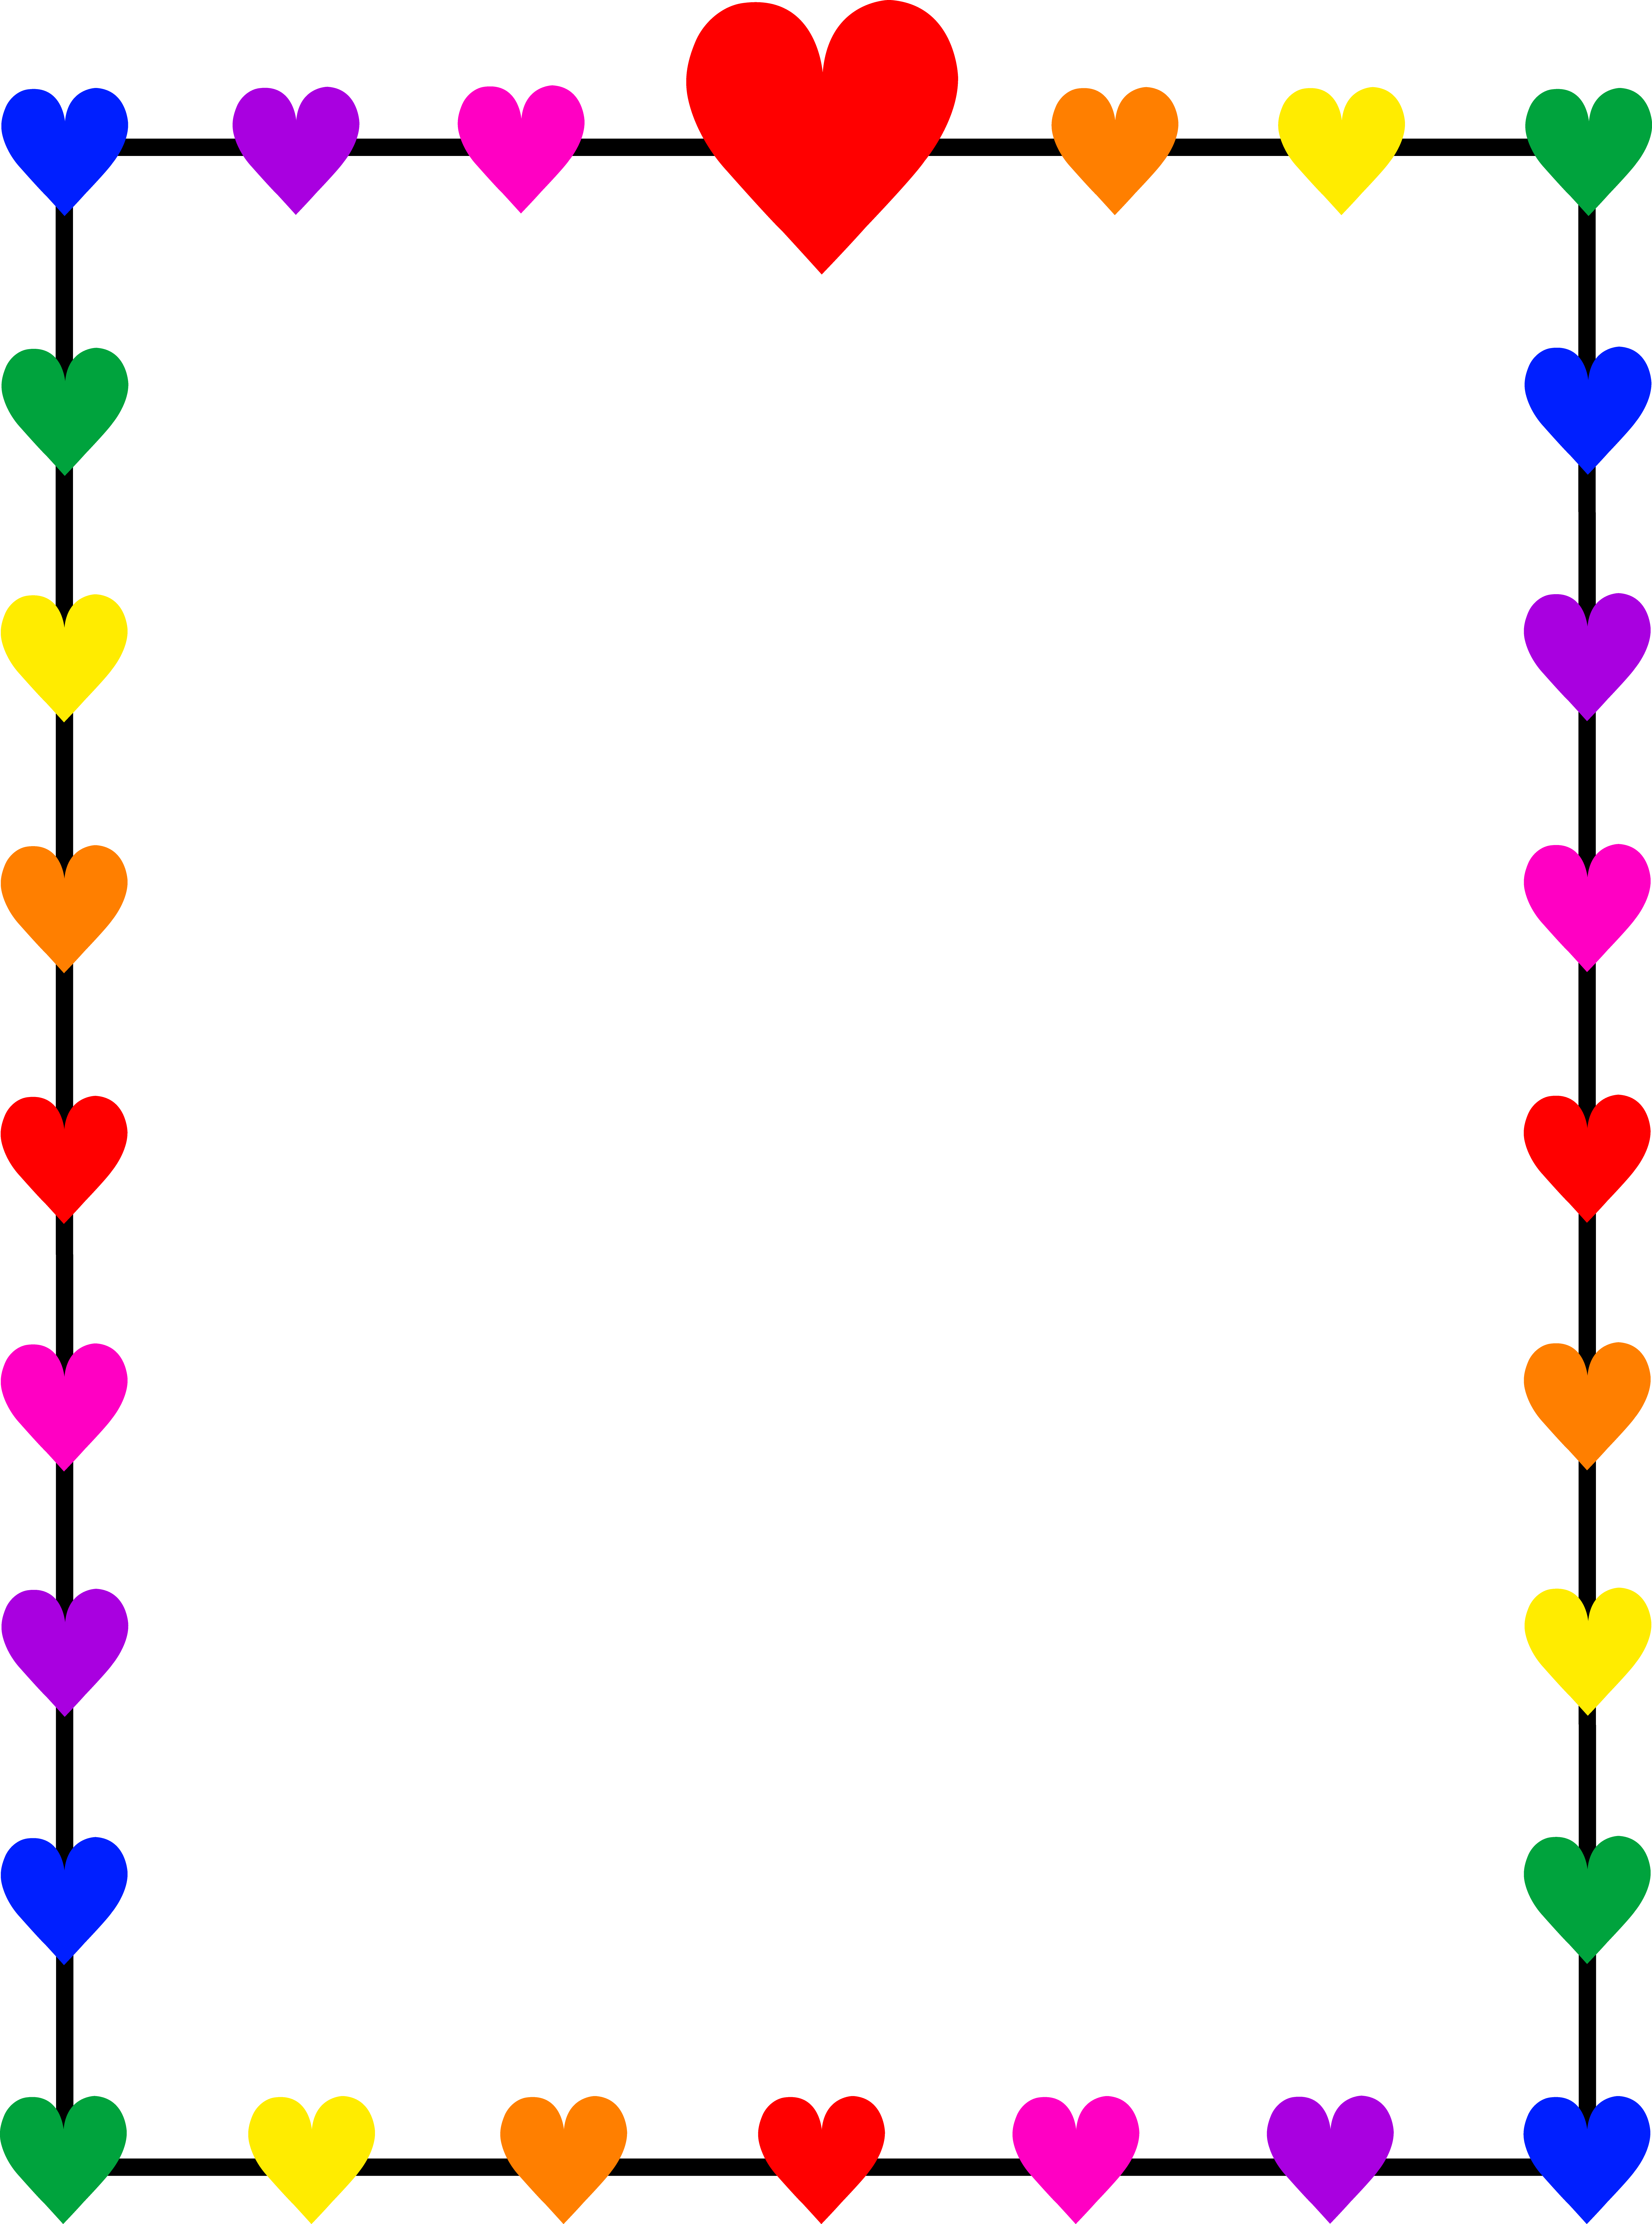 1000  images about heart bord - Heart Border Clipart